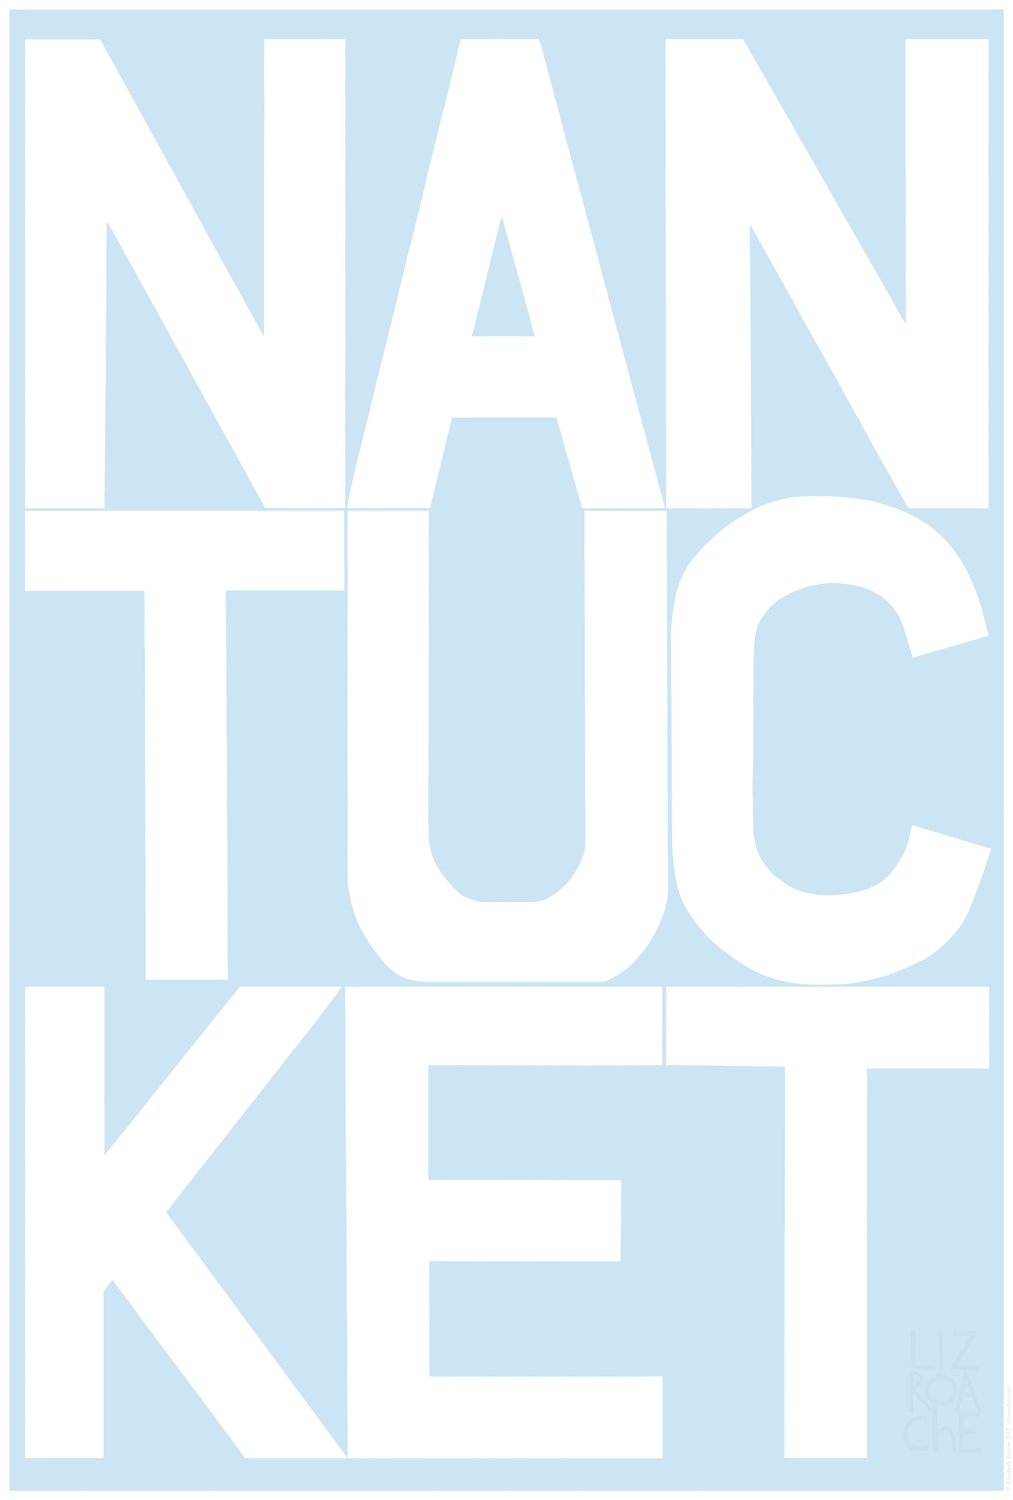 Nantucket_Blue_291C.jpg